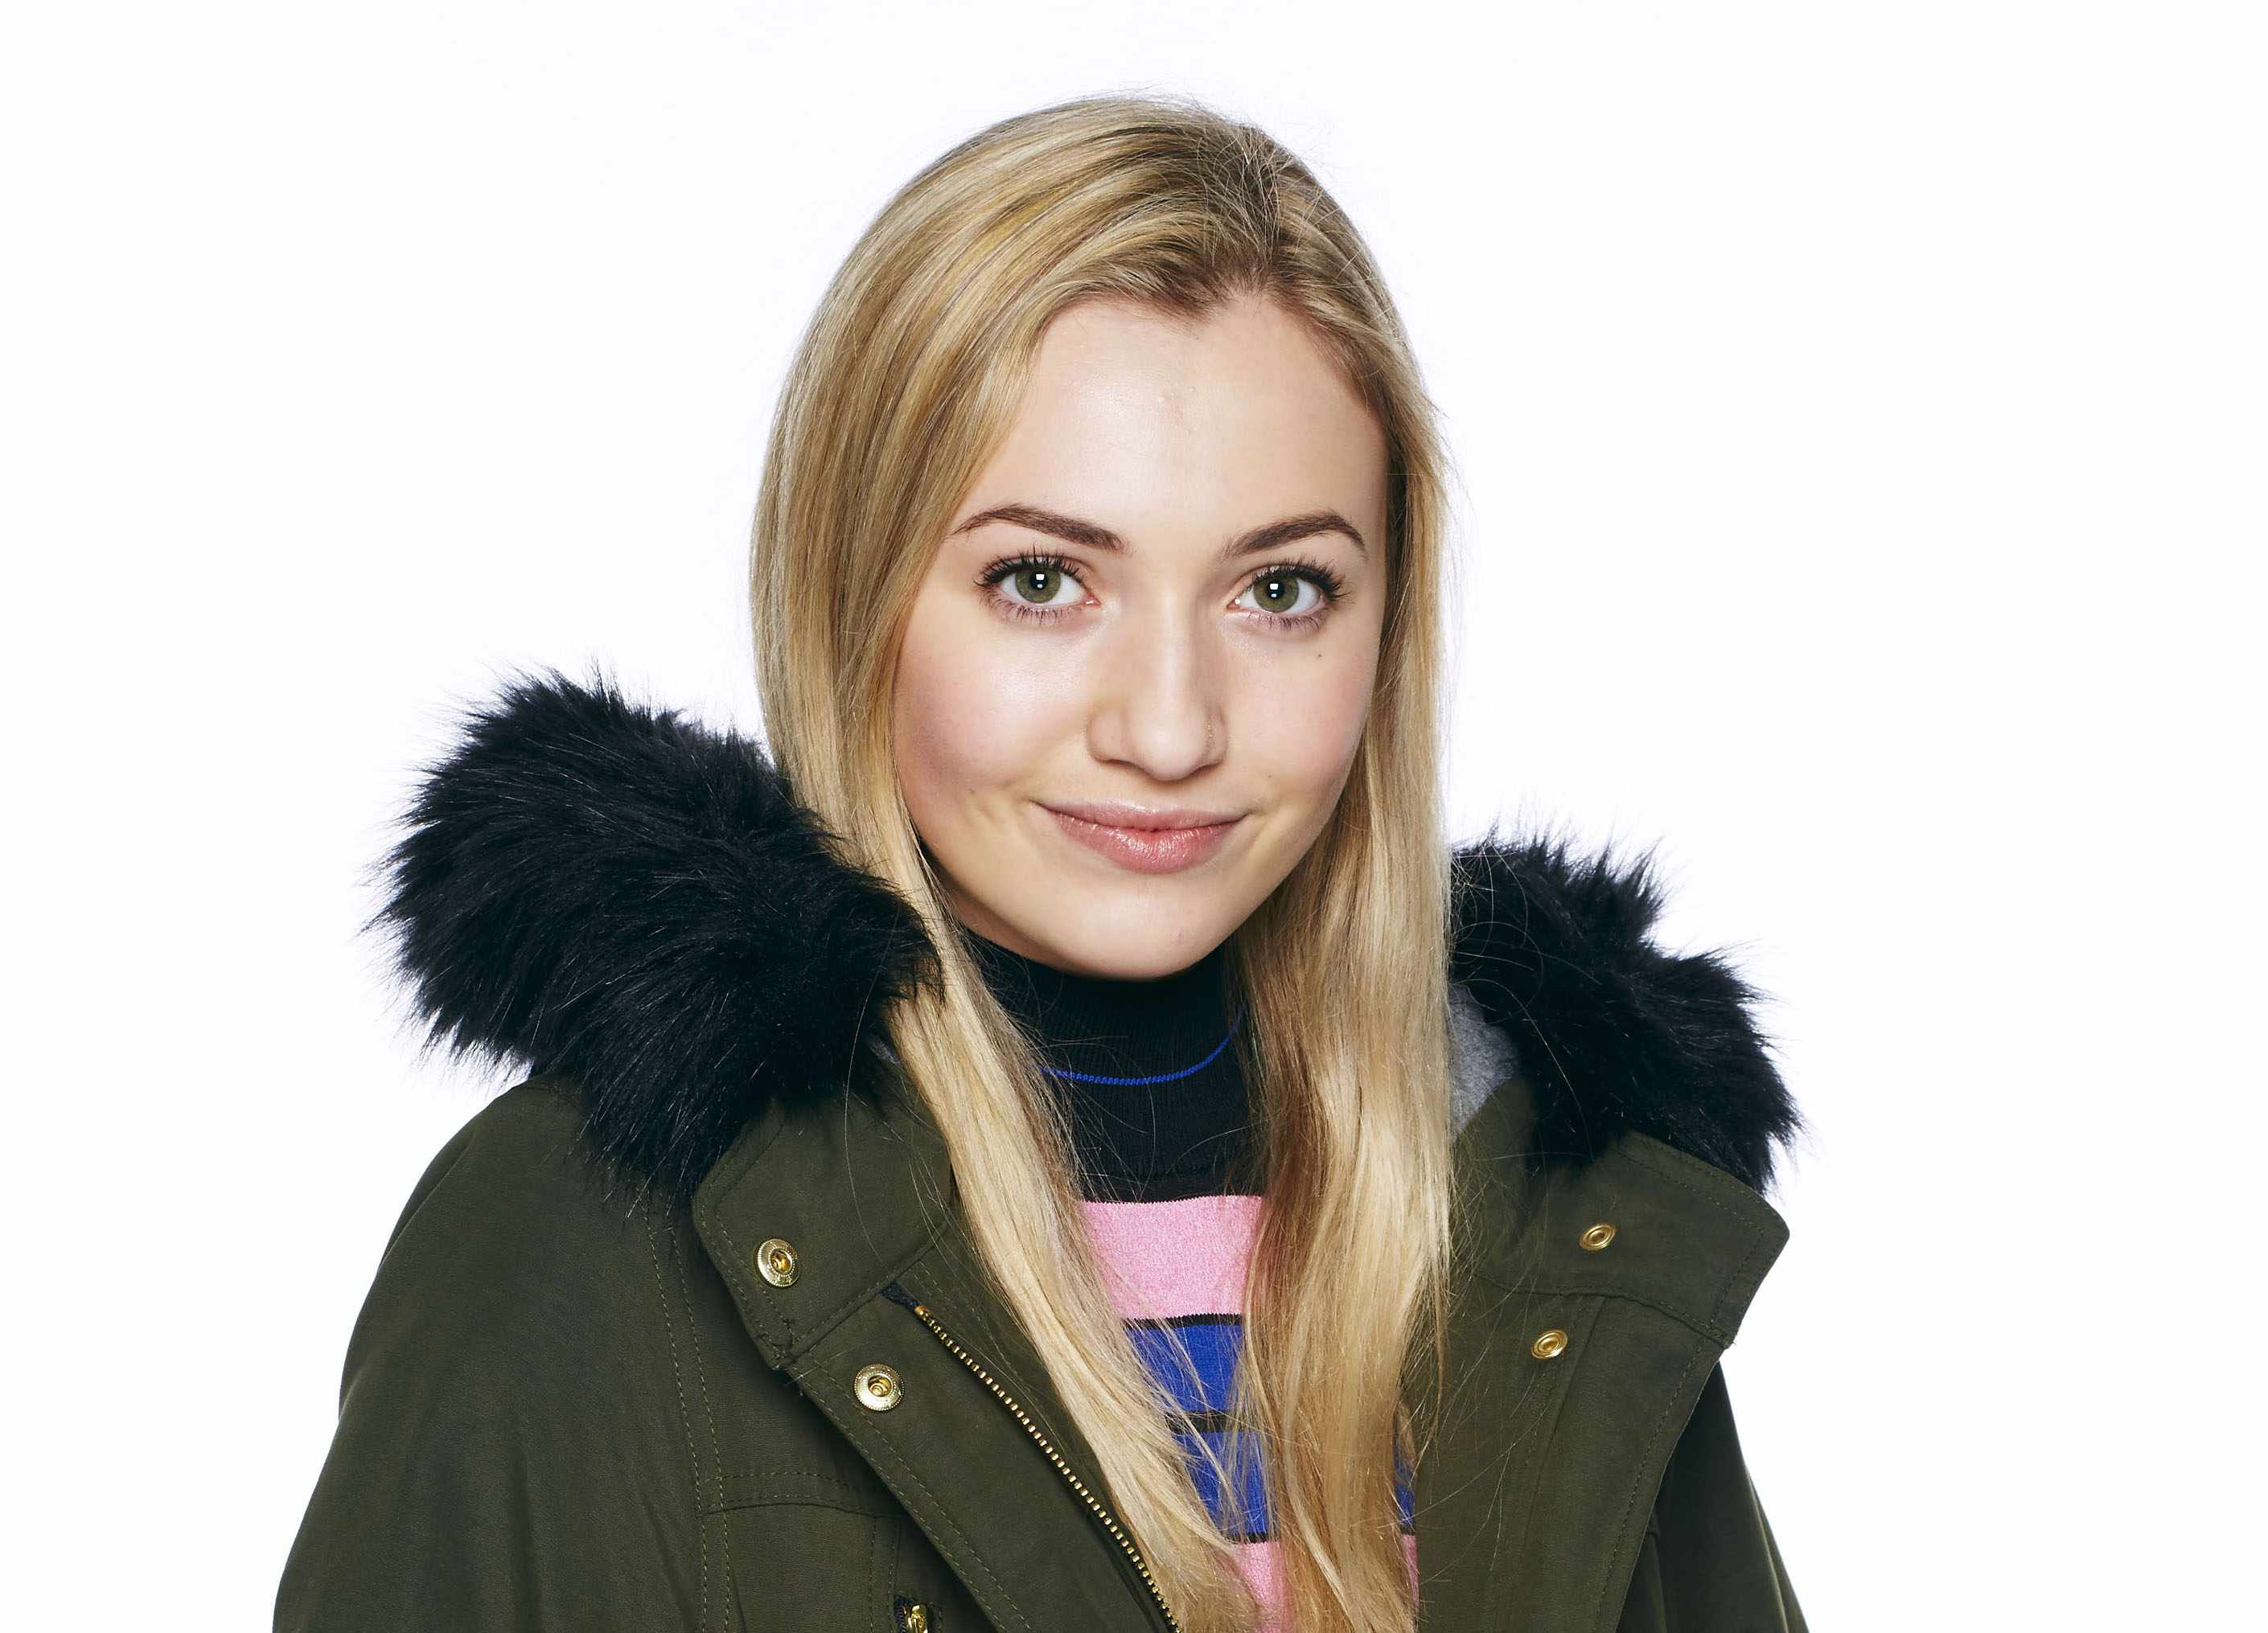 EastEnders: Louise Mitchell (Tilly Keeper)